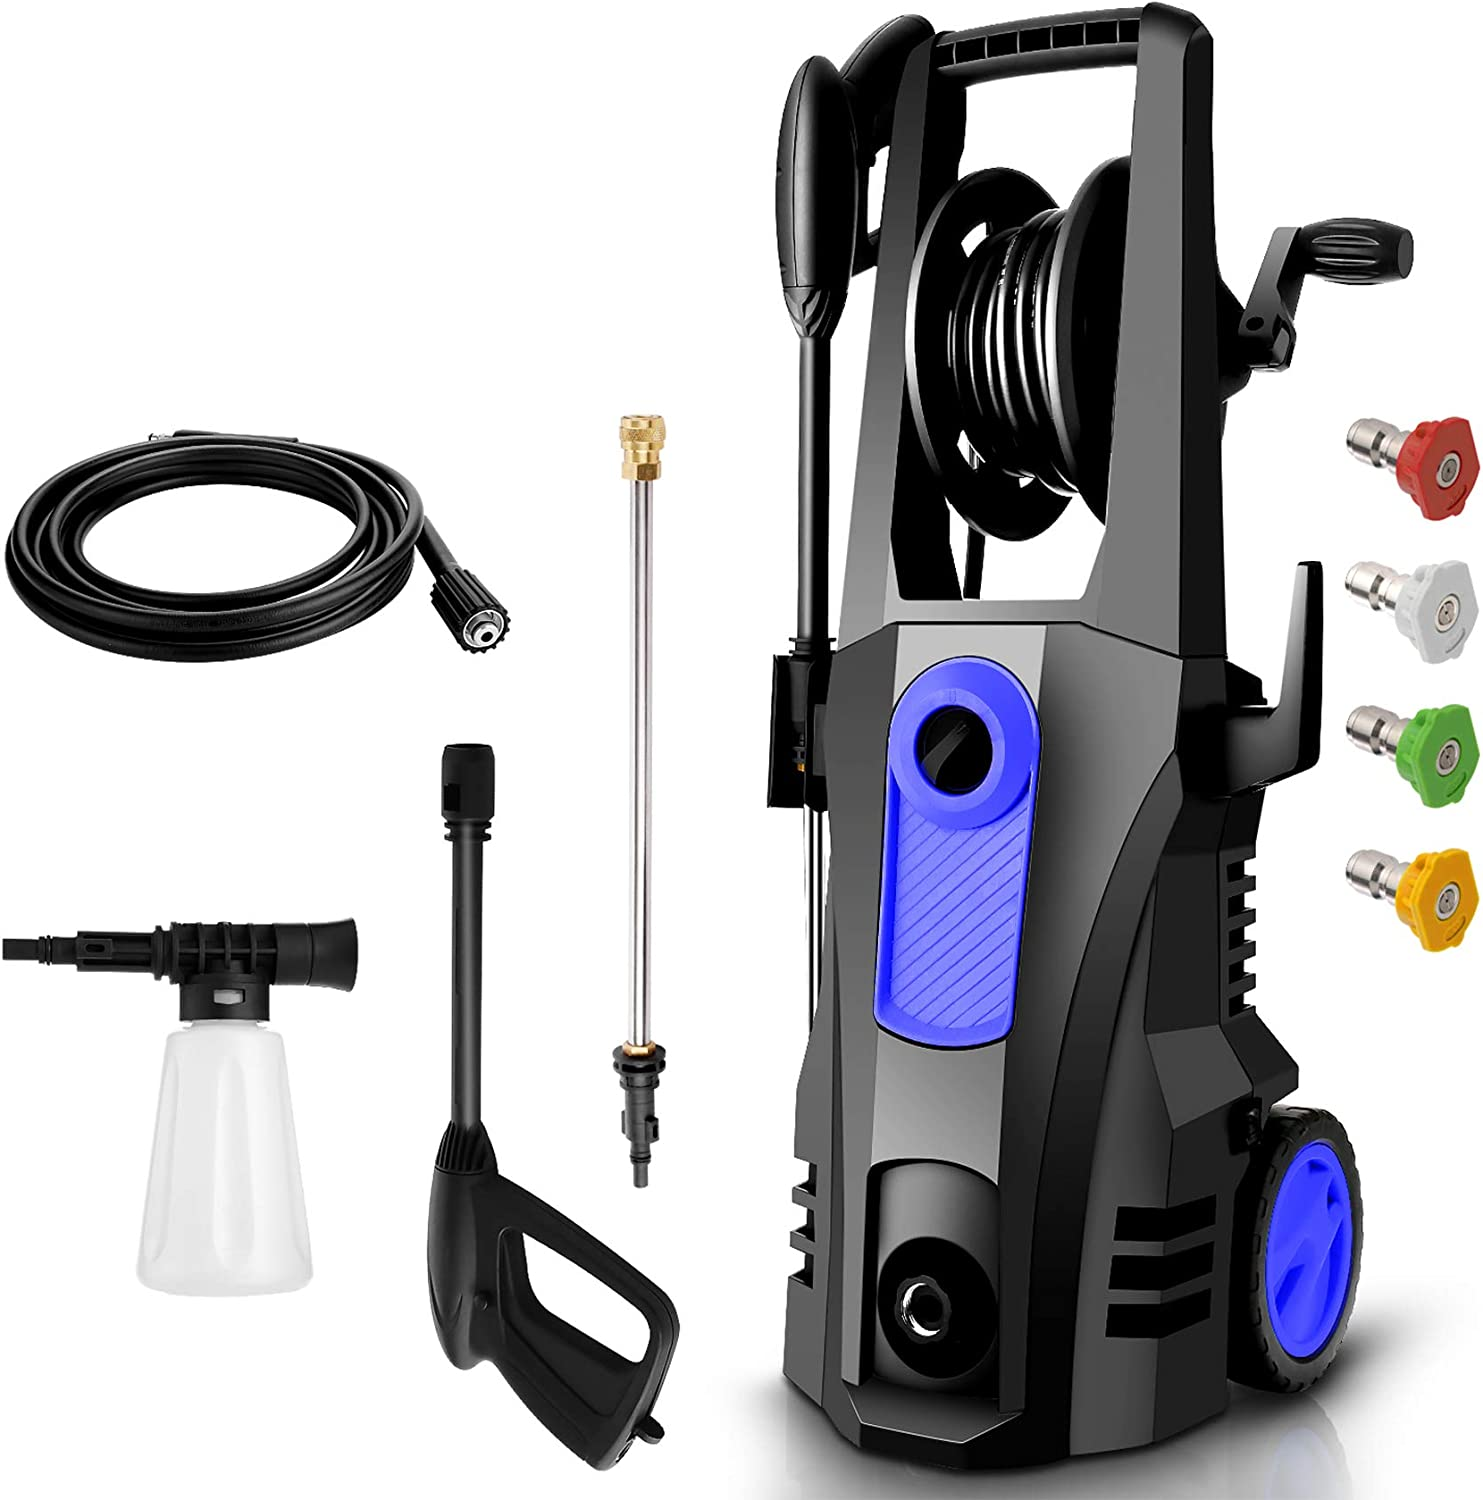 TEANDE 3500PSI Electric Pressure Washer, Car Pressure Washer High Power Washer Cleaner Machine with Hose Reel, 1800W, 2.6GPM, 4 Nozzles for Patio Garden Yard : Garden & Outdoor